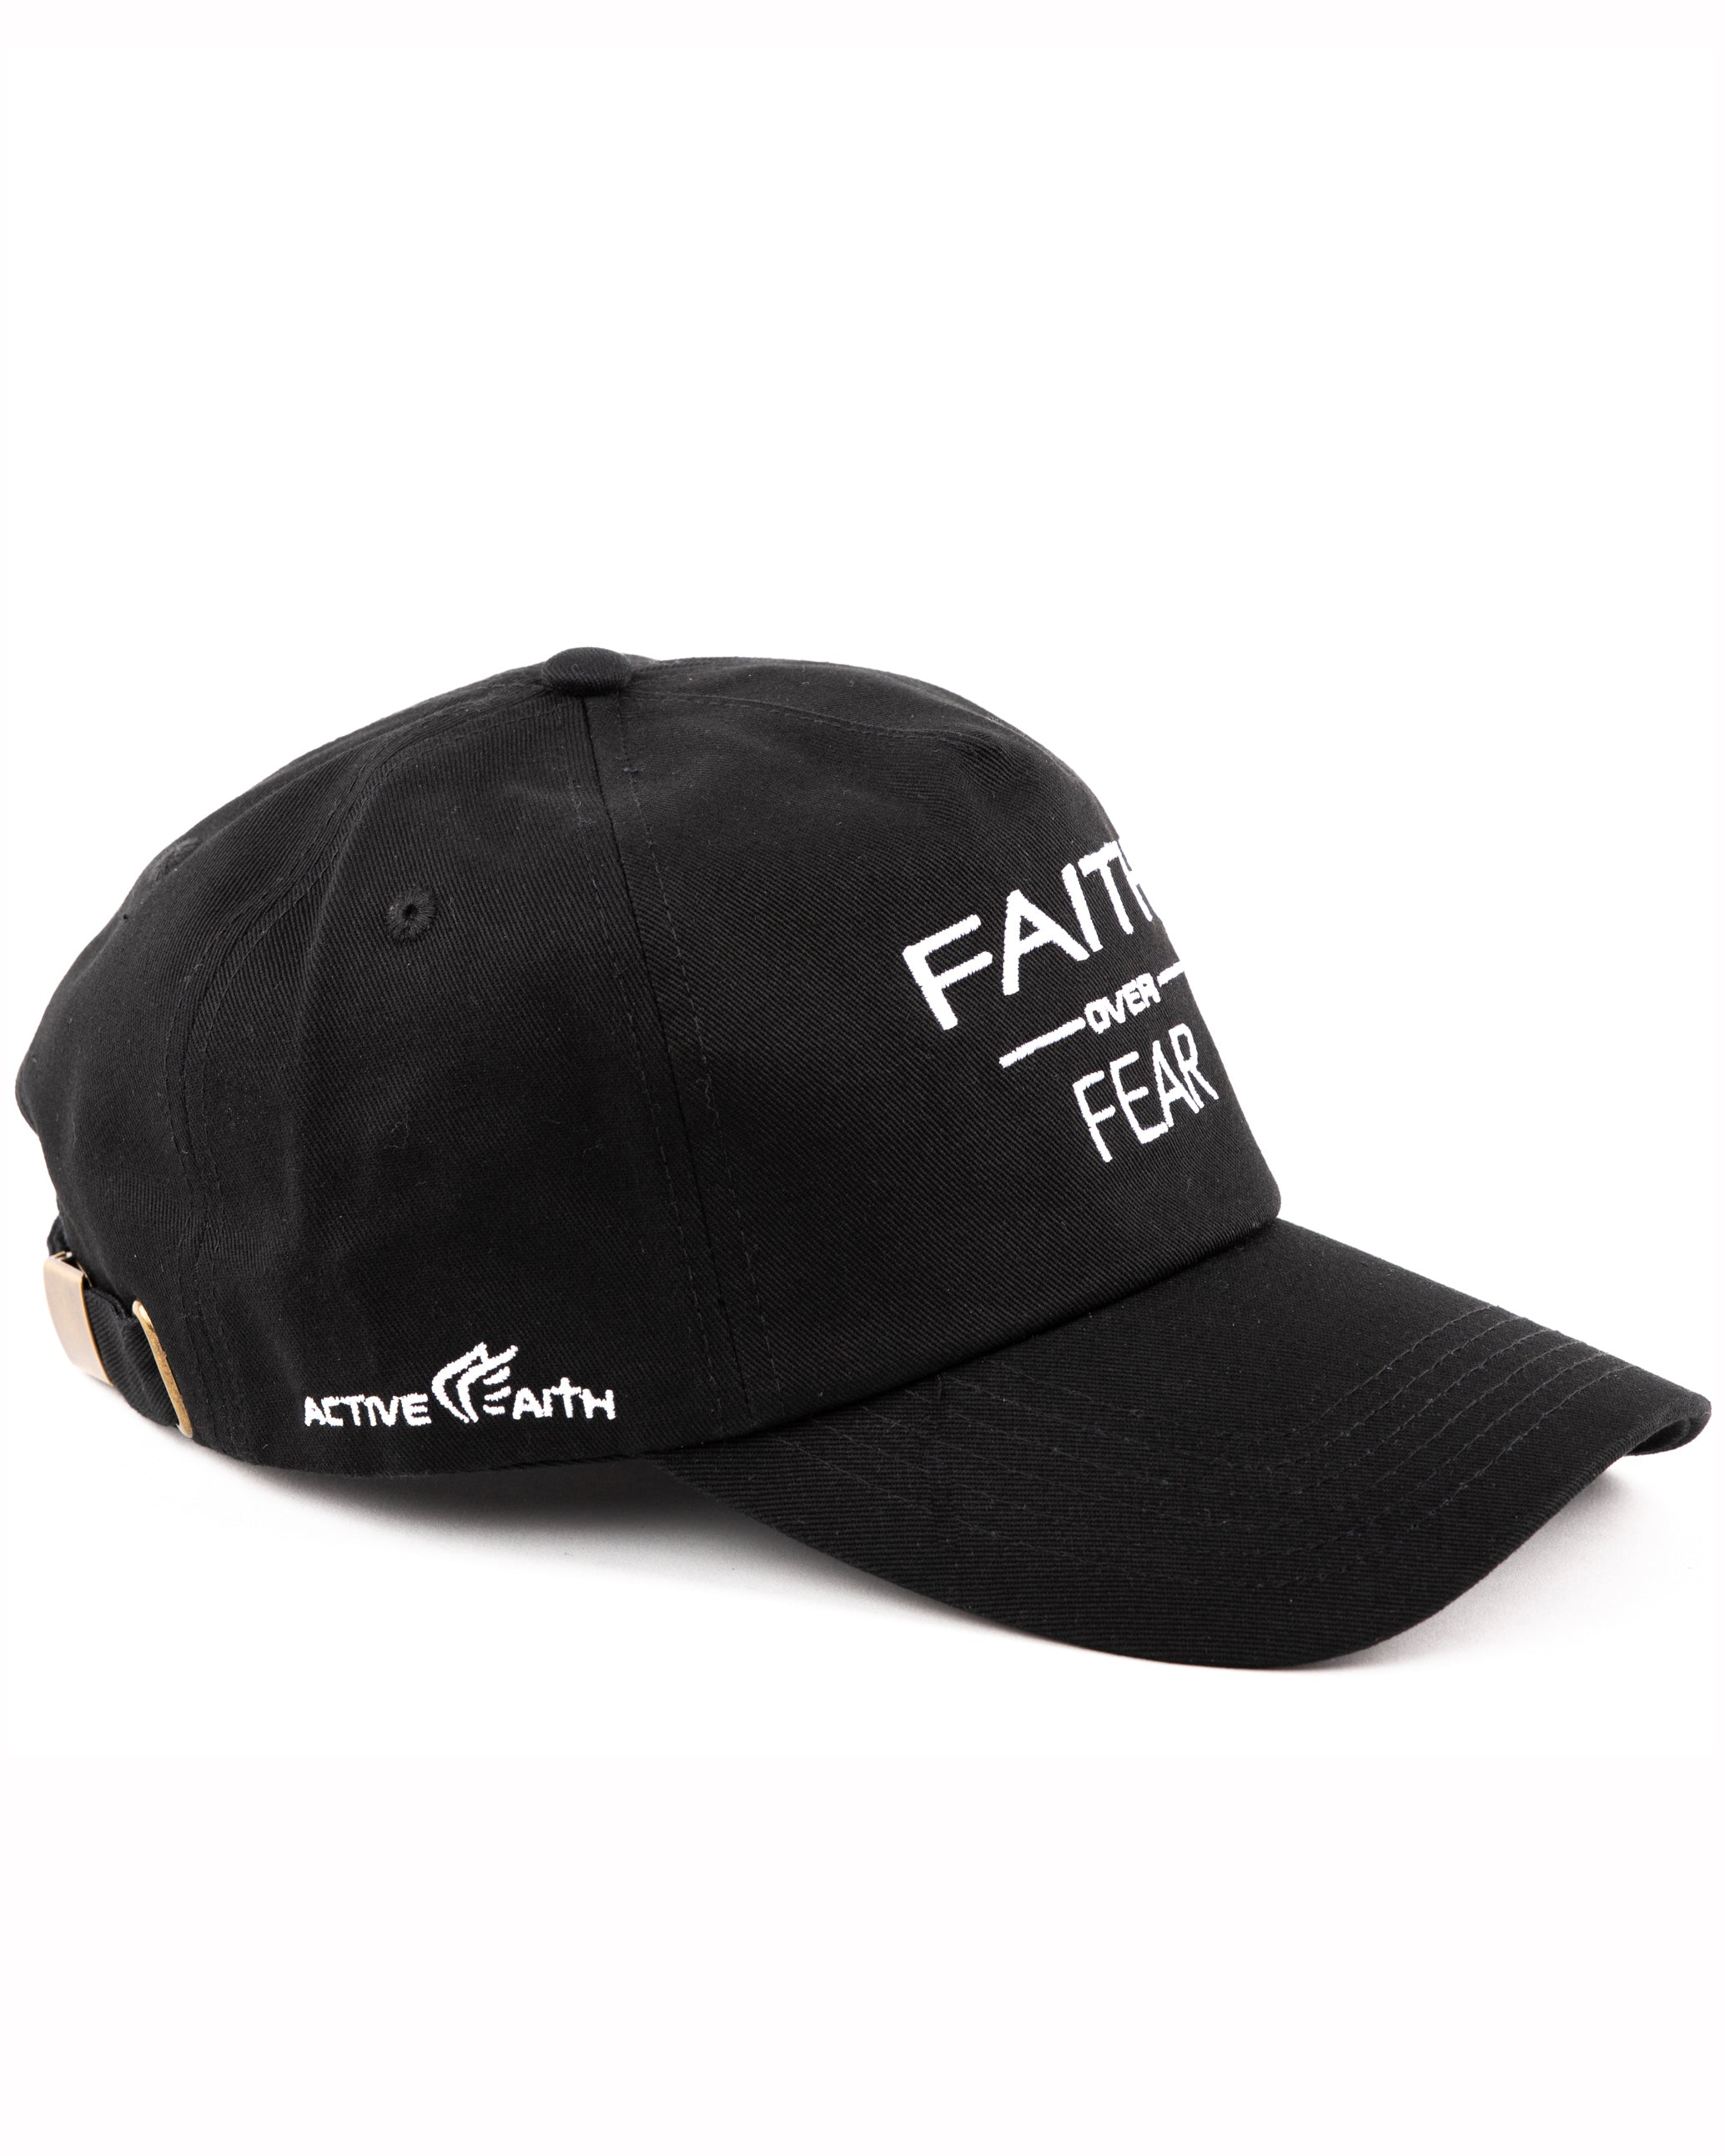 Faith Over Fear Dad Hat